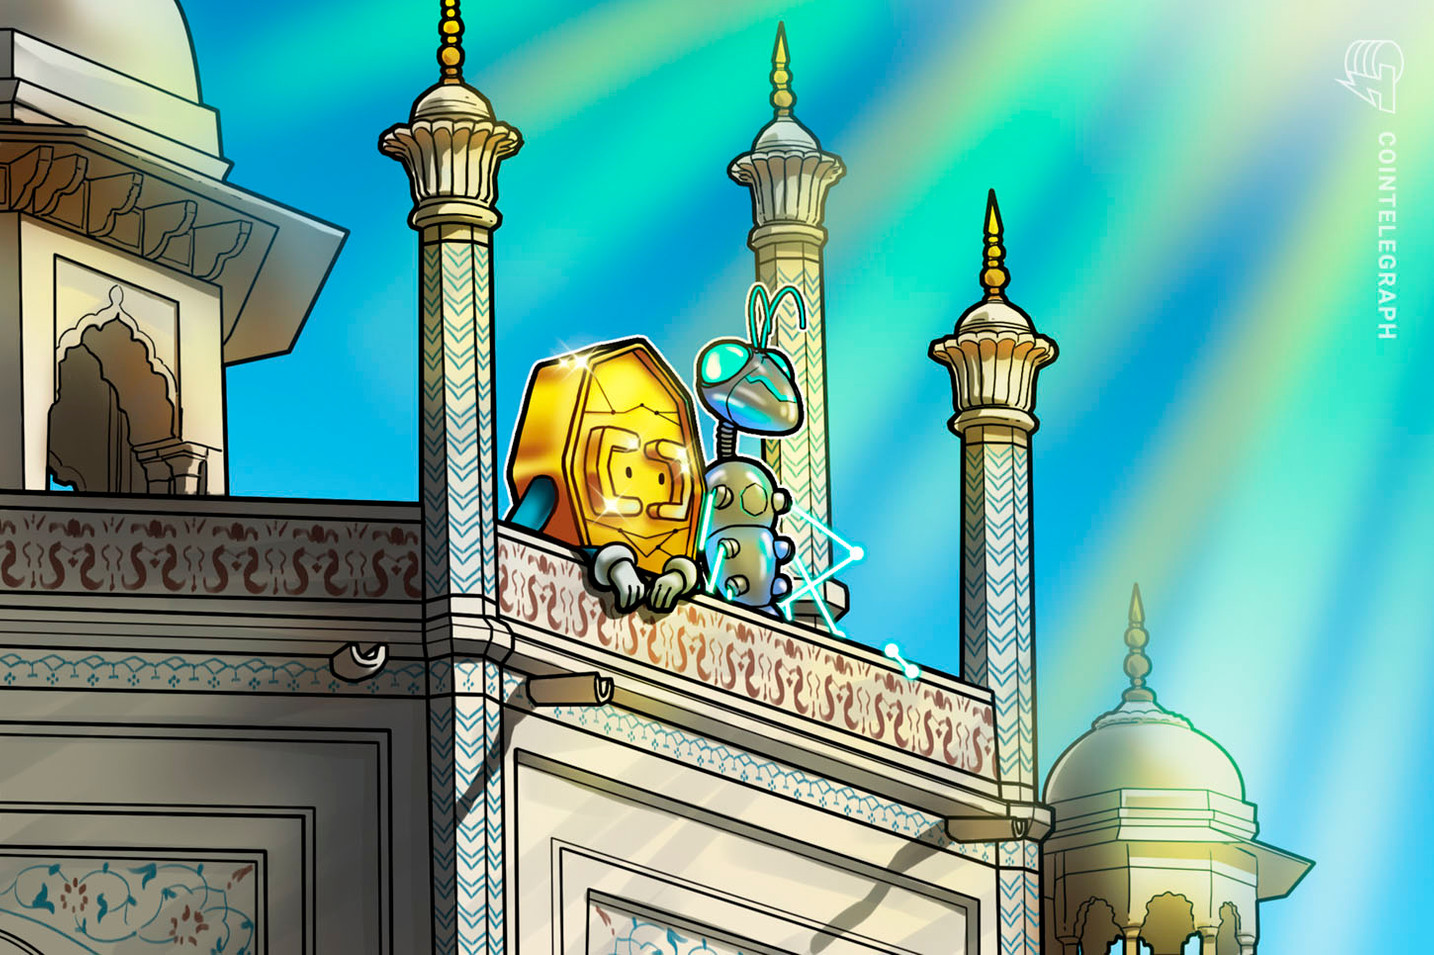 Uncertain Regulations Block Indian Banks' Entry Into Crypto, Says Expert